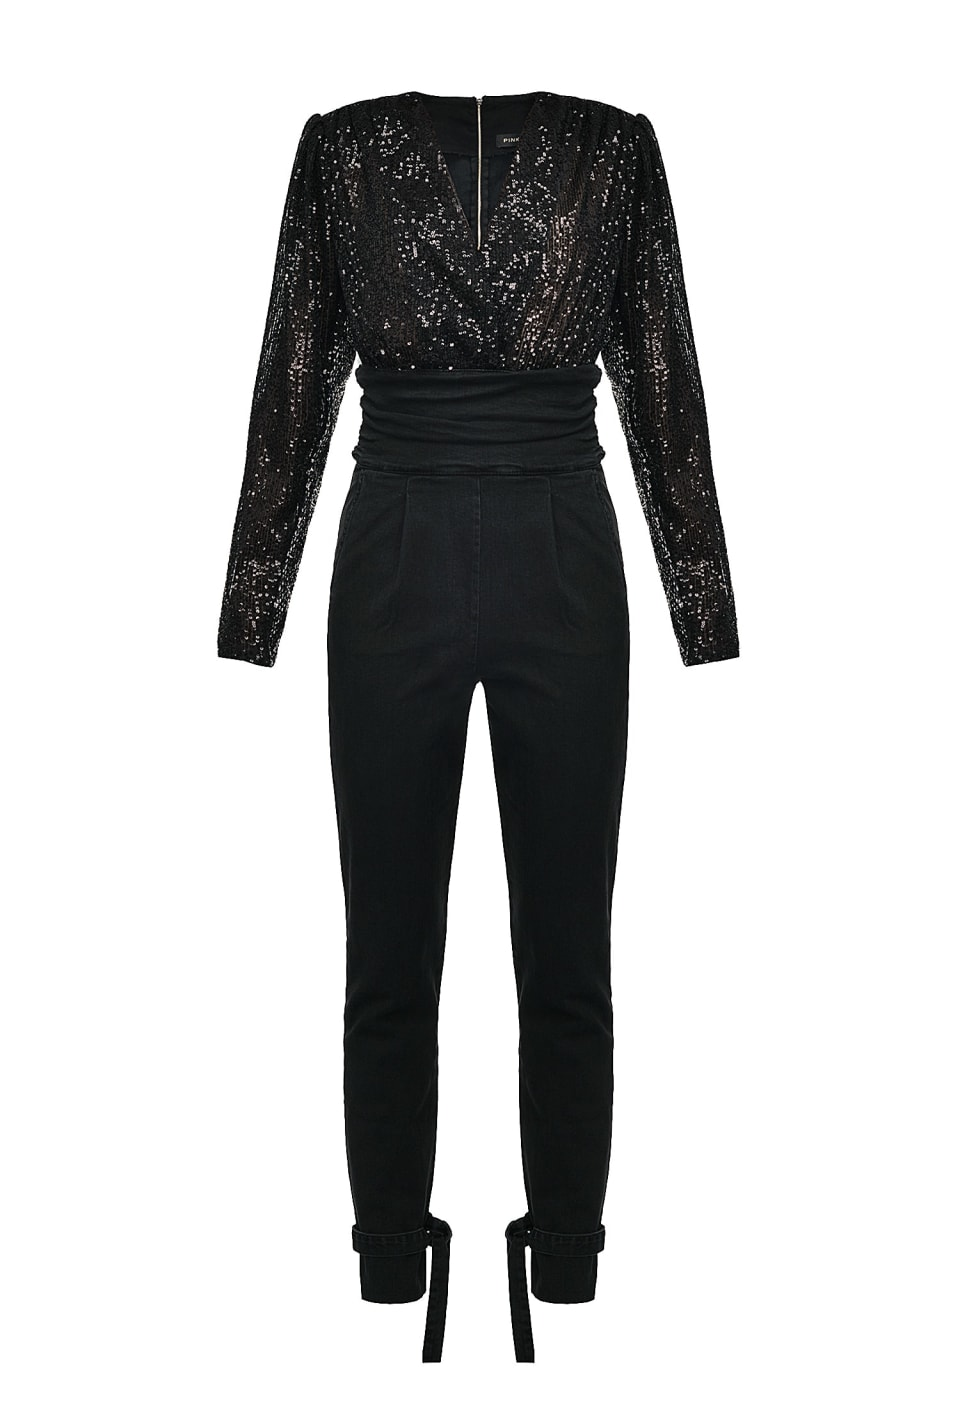 Jumpsuit in black comfort denim and sequins